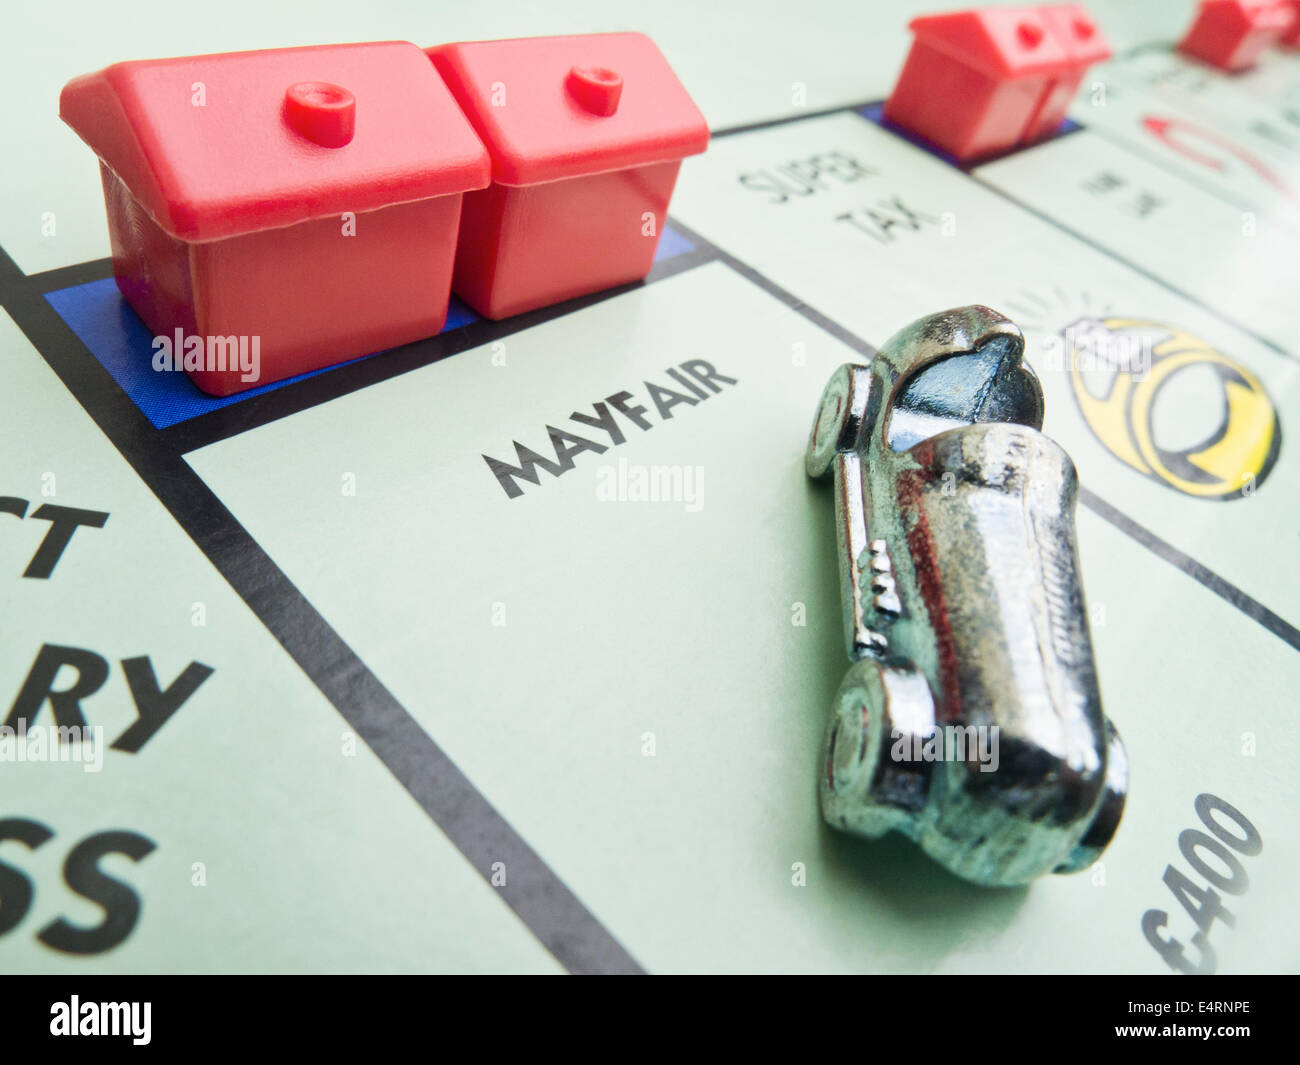 'MAYFAIR' on a Monopoly board with the car and two hotels. - Stock Image